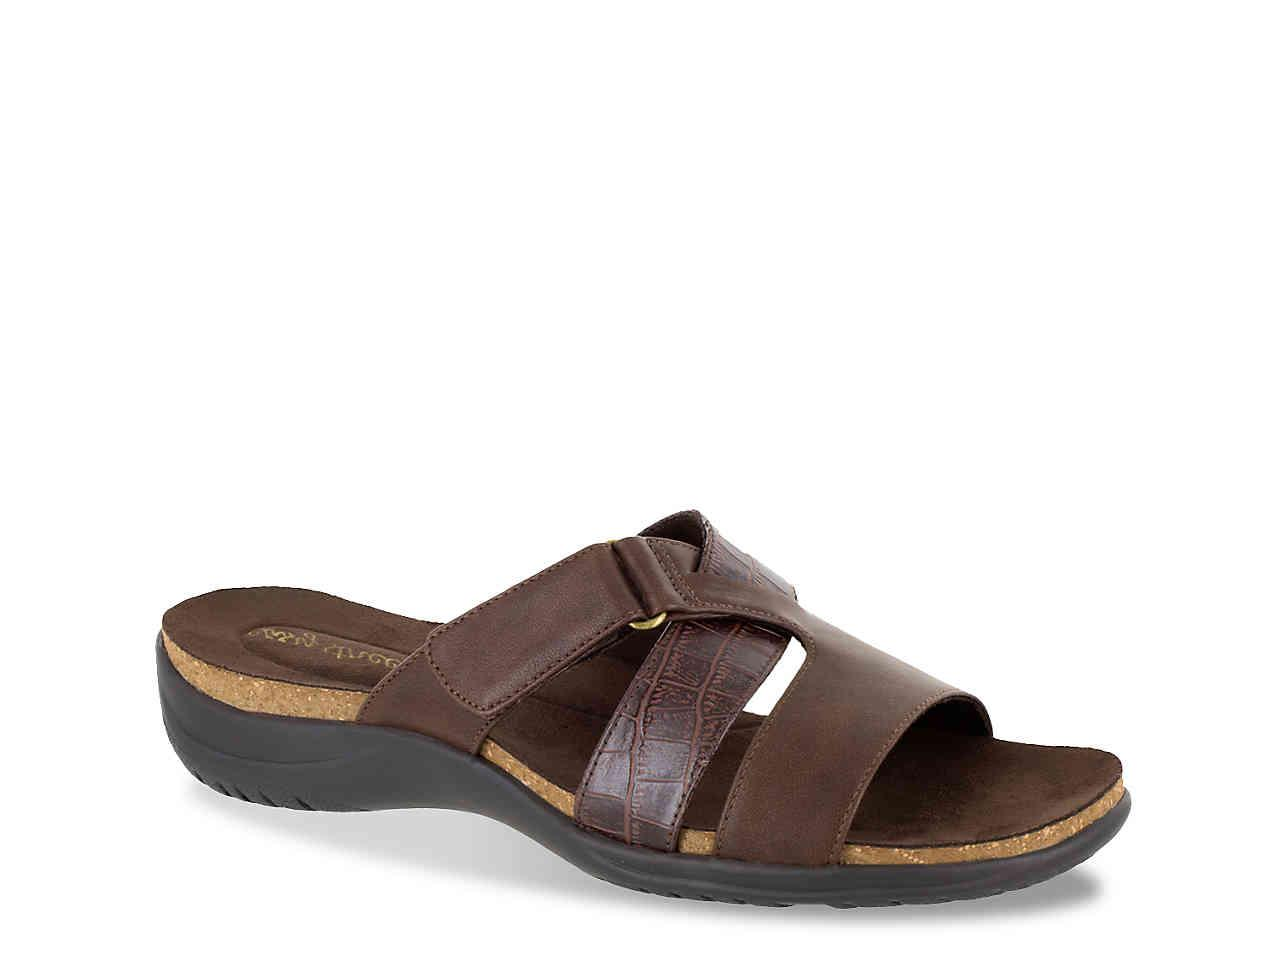 49a4d7d9af7f Lyst - Easy Street Frenzy Sandal in Brown